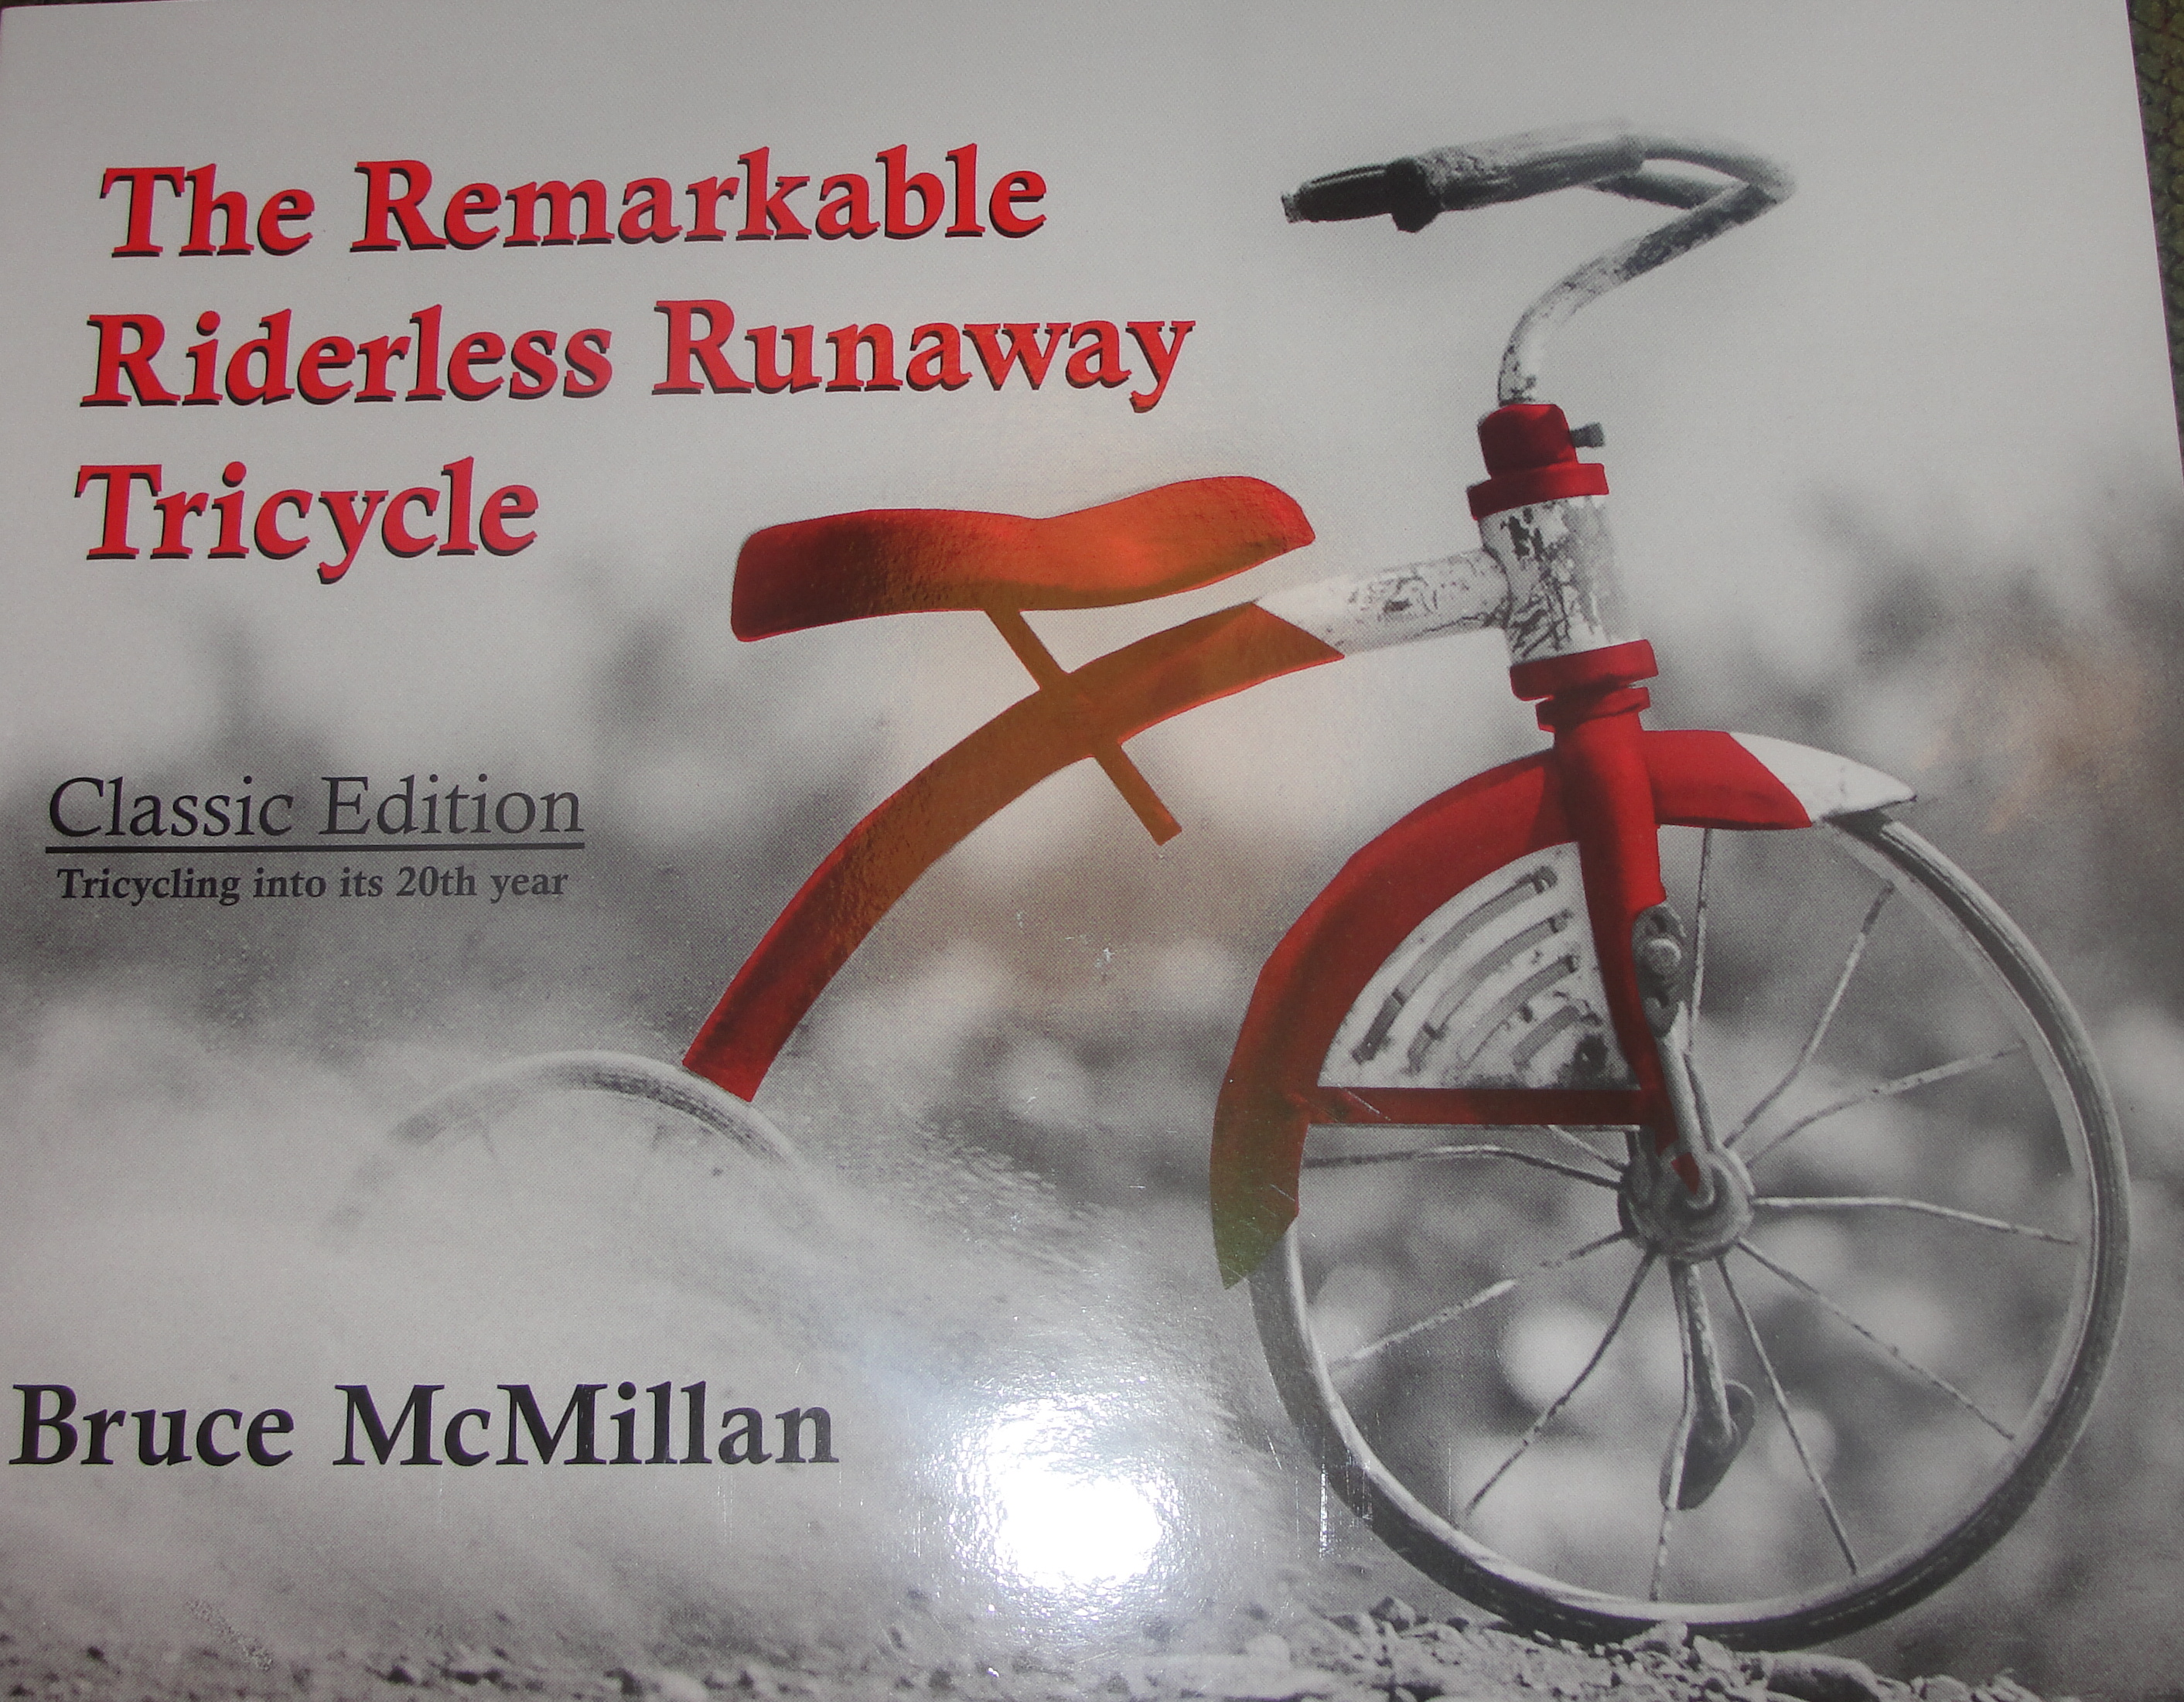 The Remarkable Riderless Runaway Tricycle by Bruce McMillan